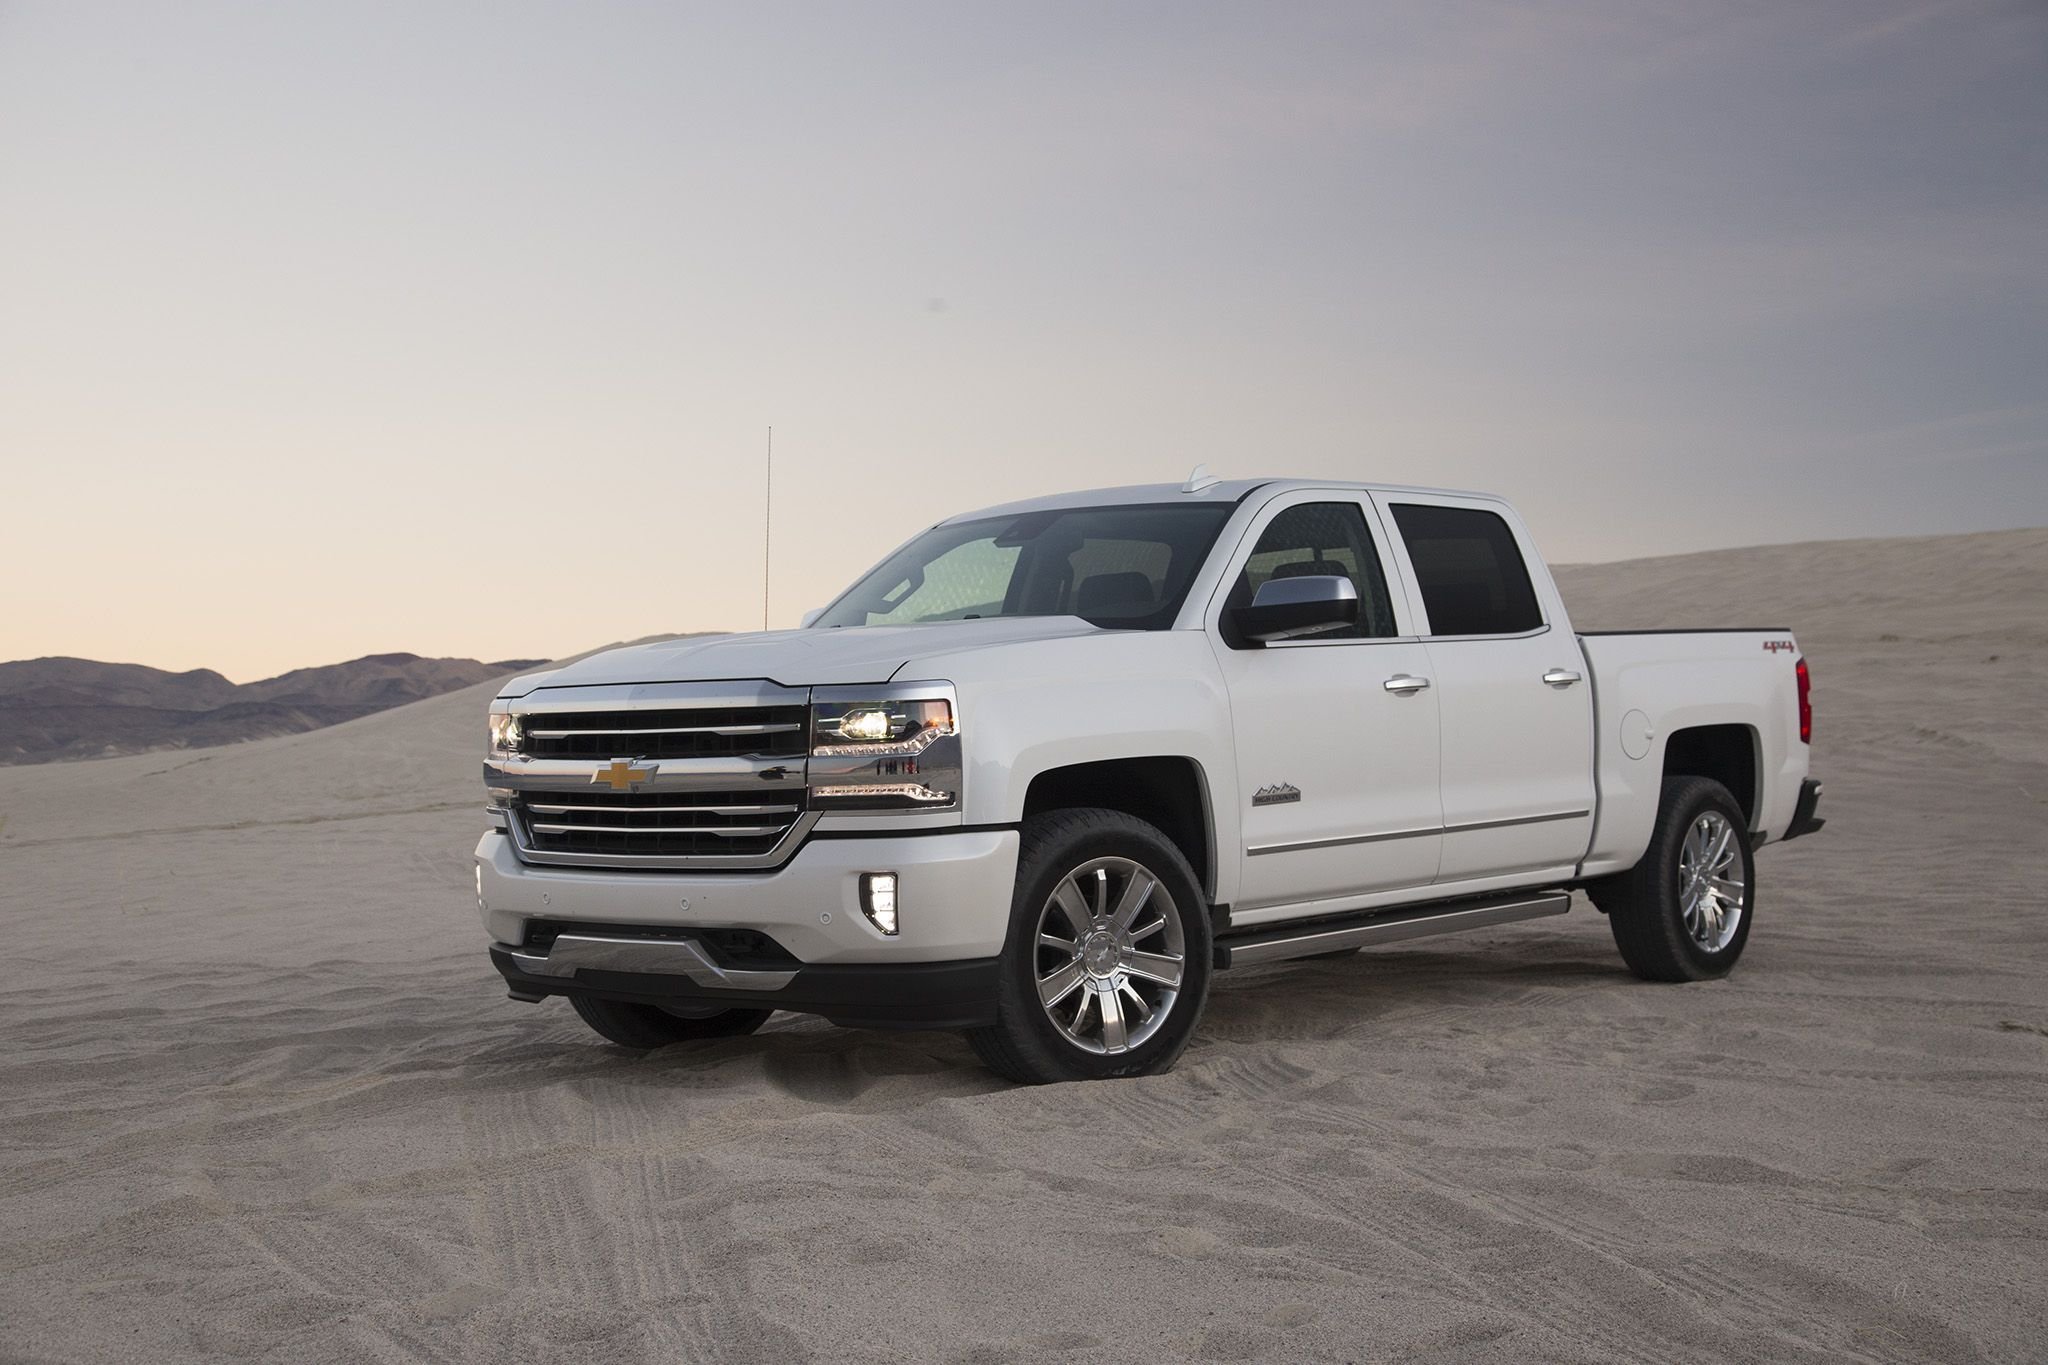 Check out the new 2017 chevrolet silverado high desert coming this fall with waterproof storage chevy gm trucks read more http autoweek com